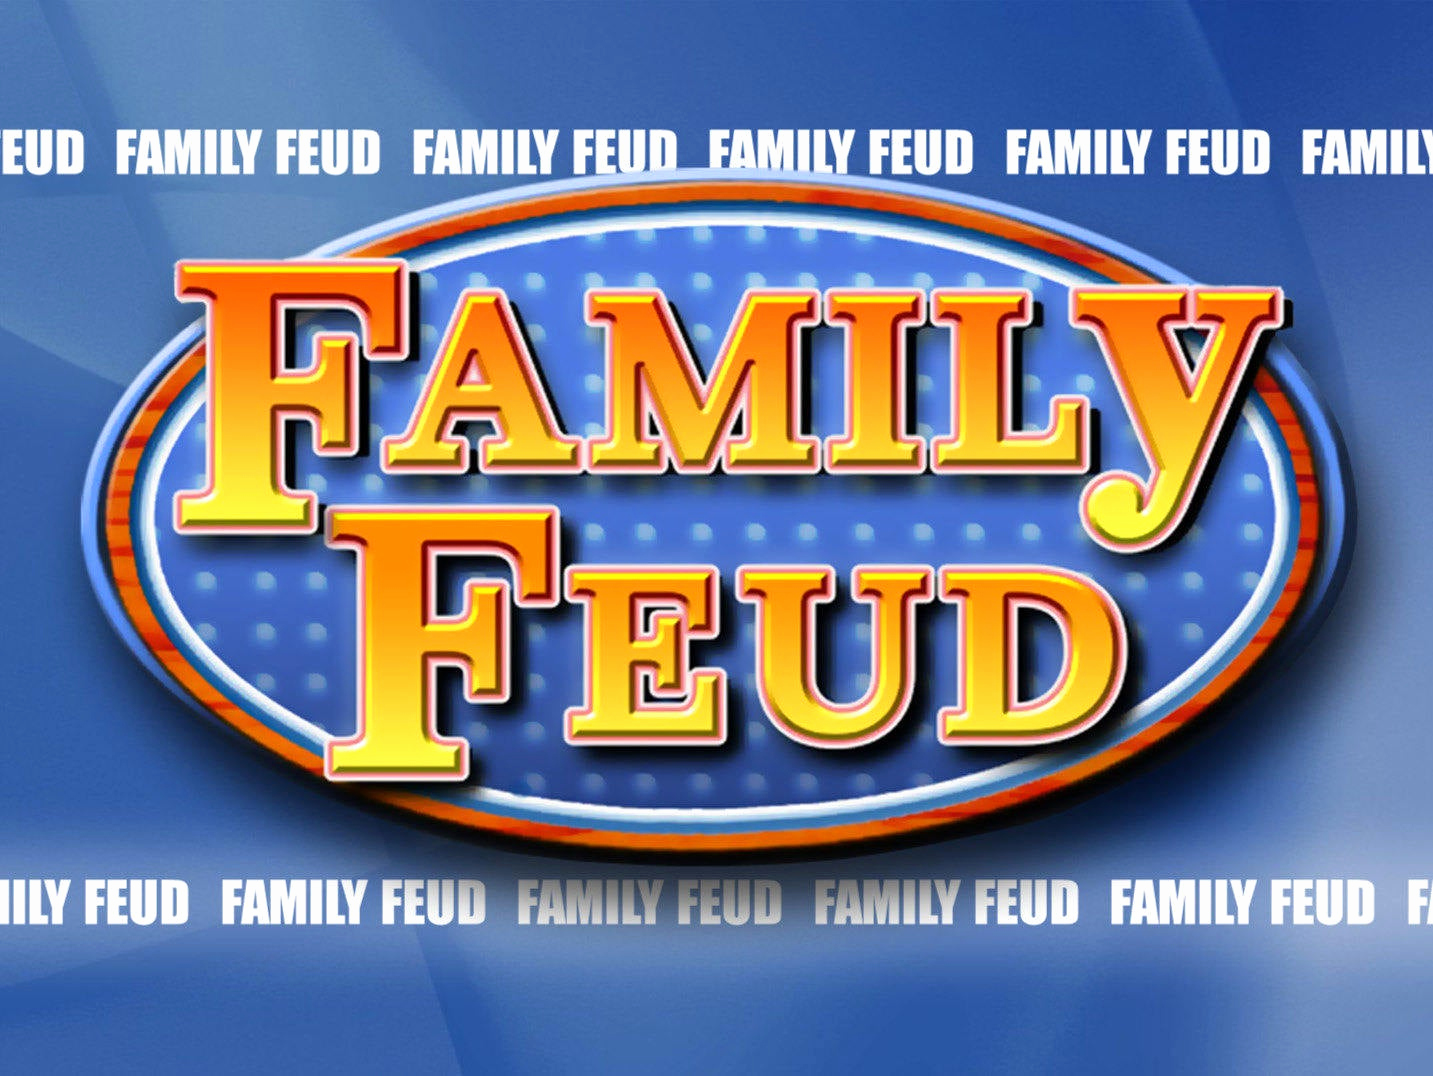 Family Feud Powerpoint Template Beautiful Customizable Family Feud Powerpoint Template